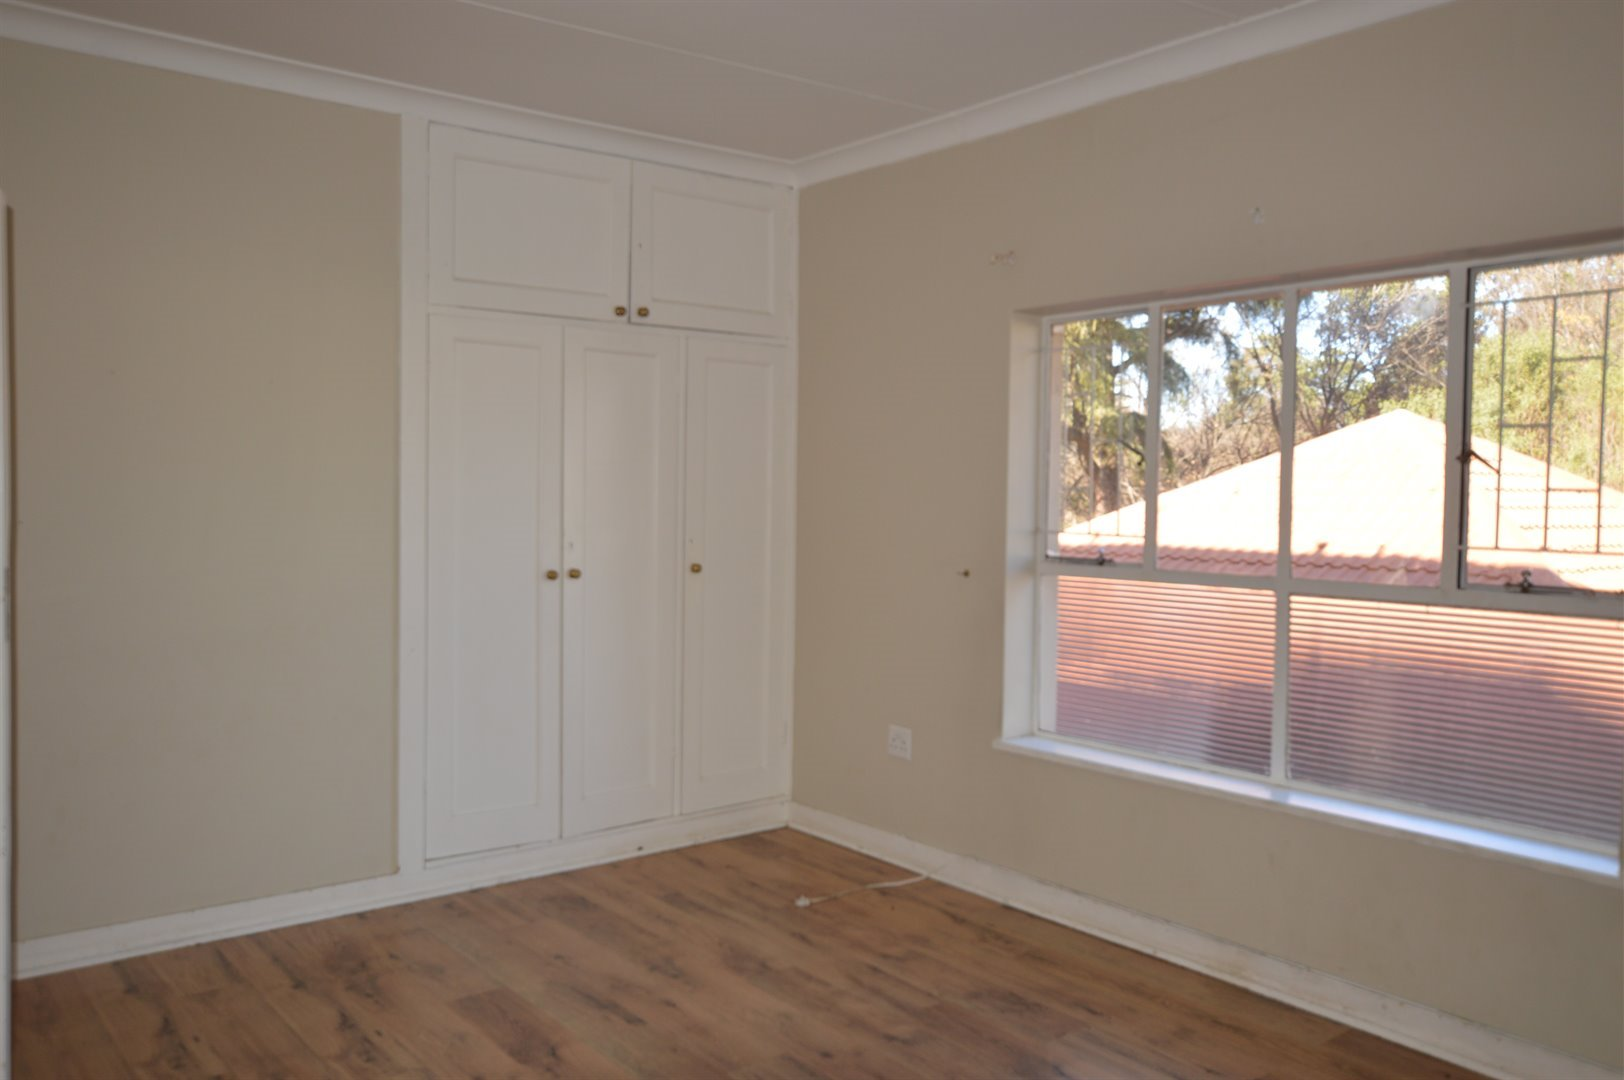 Vanderbijlpark Sw5 property for sale. Ref No: 13501187. Picture no 29